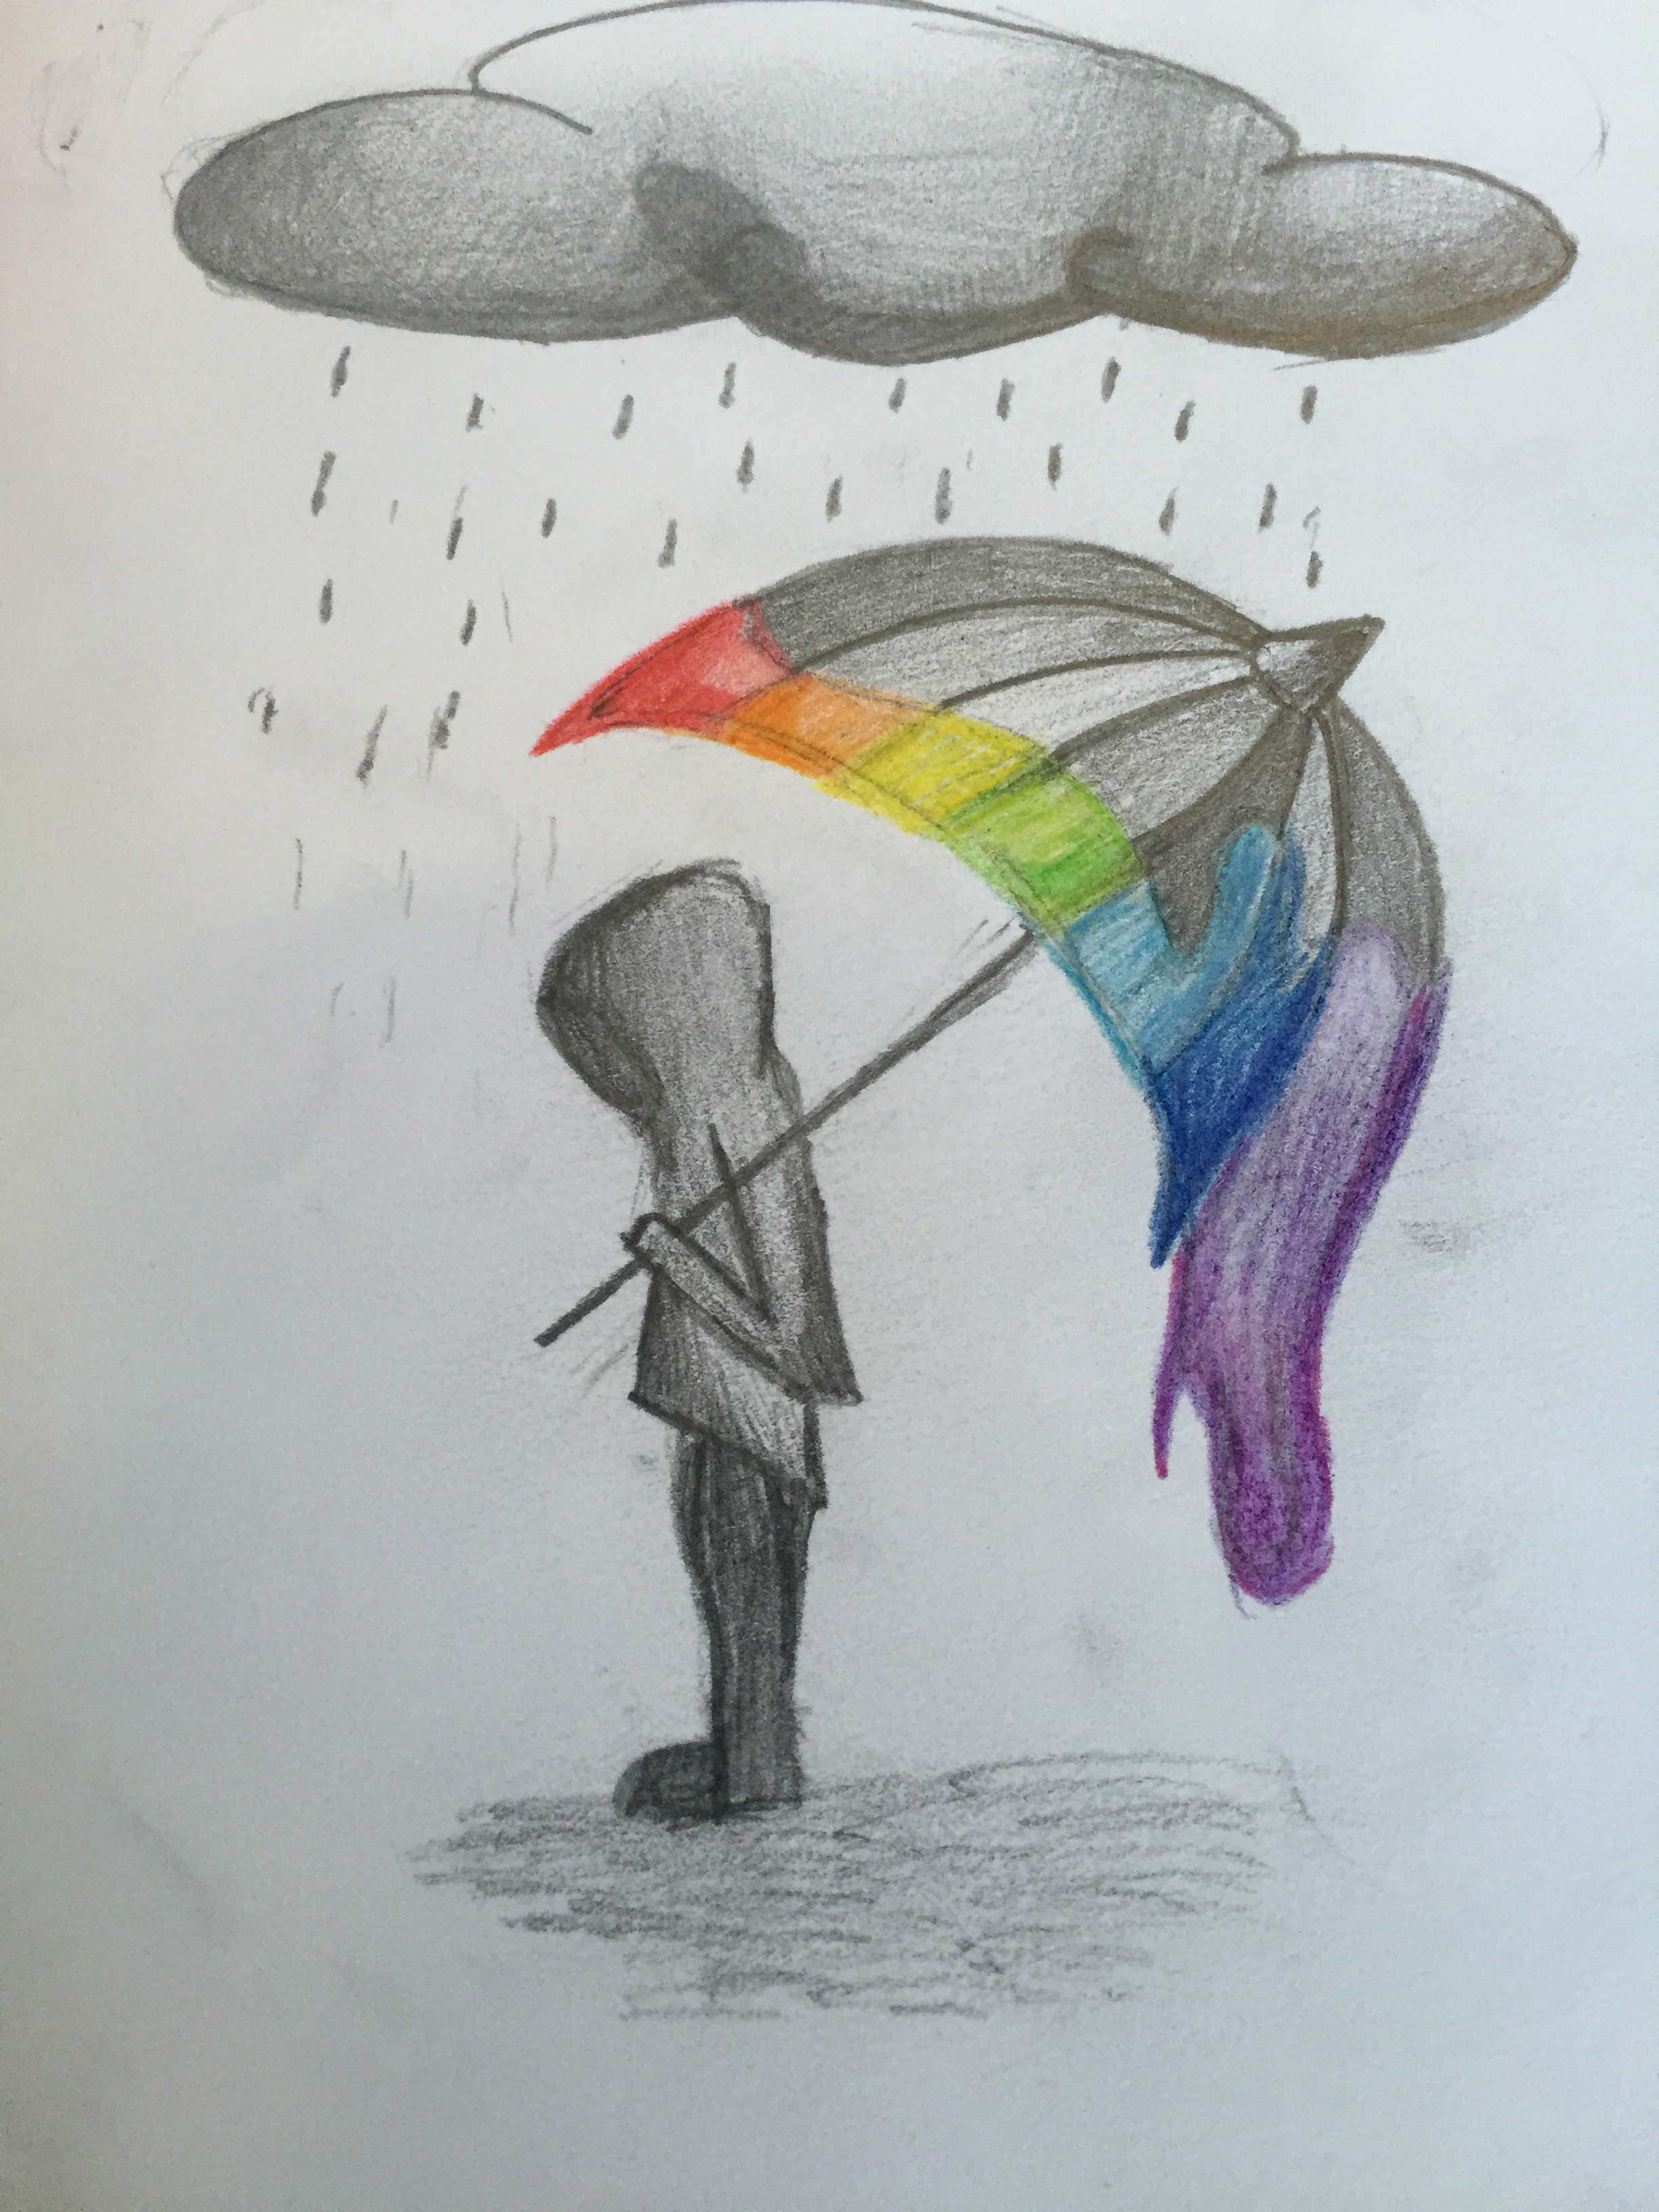 2448x3264 rainbow rain drawing